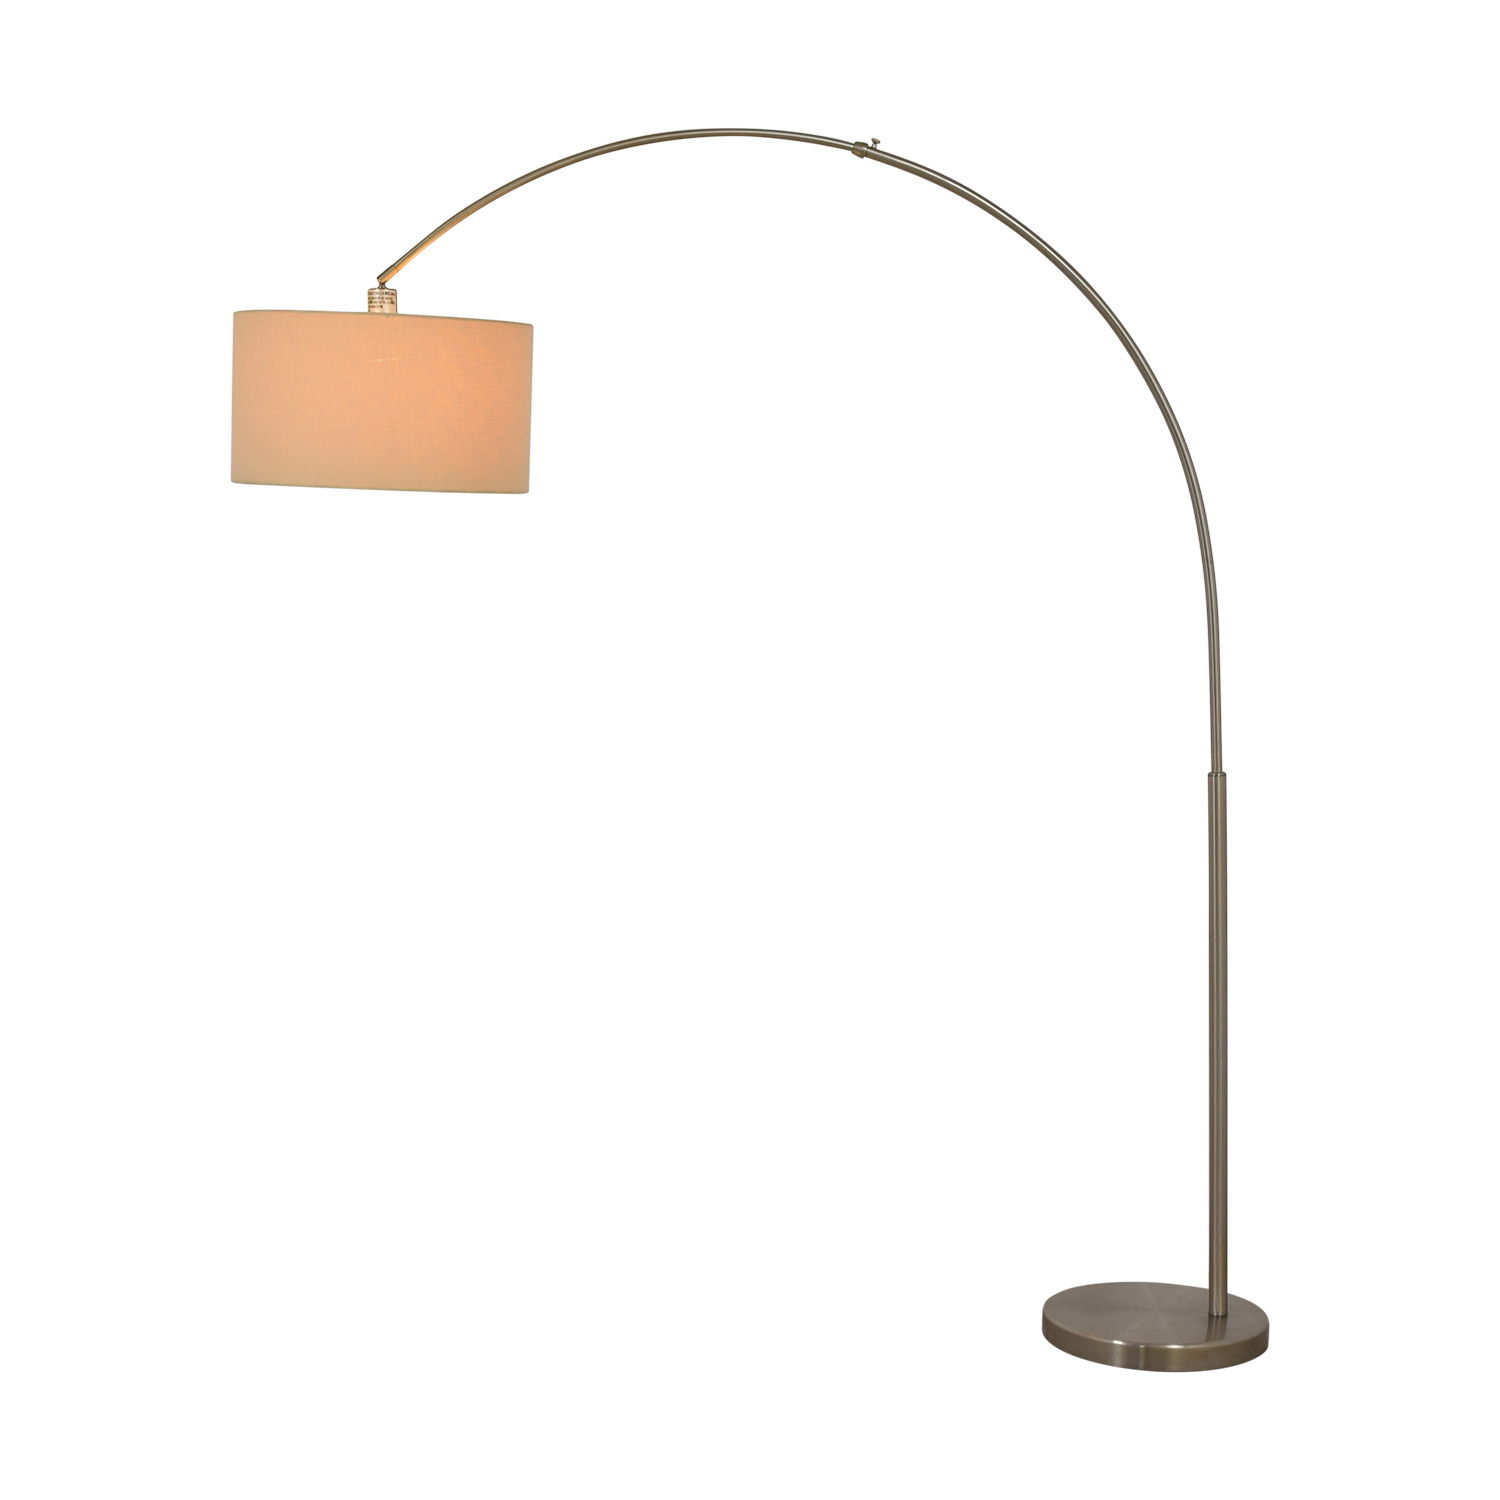 shop CB2 CB2 Big Dipper Arc Brushed Nickel Floor Lamp online